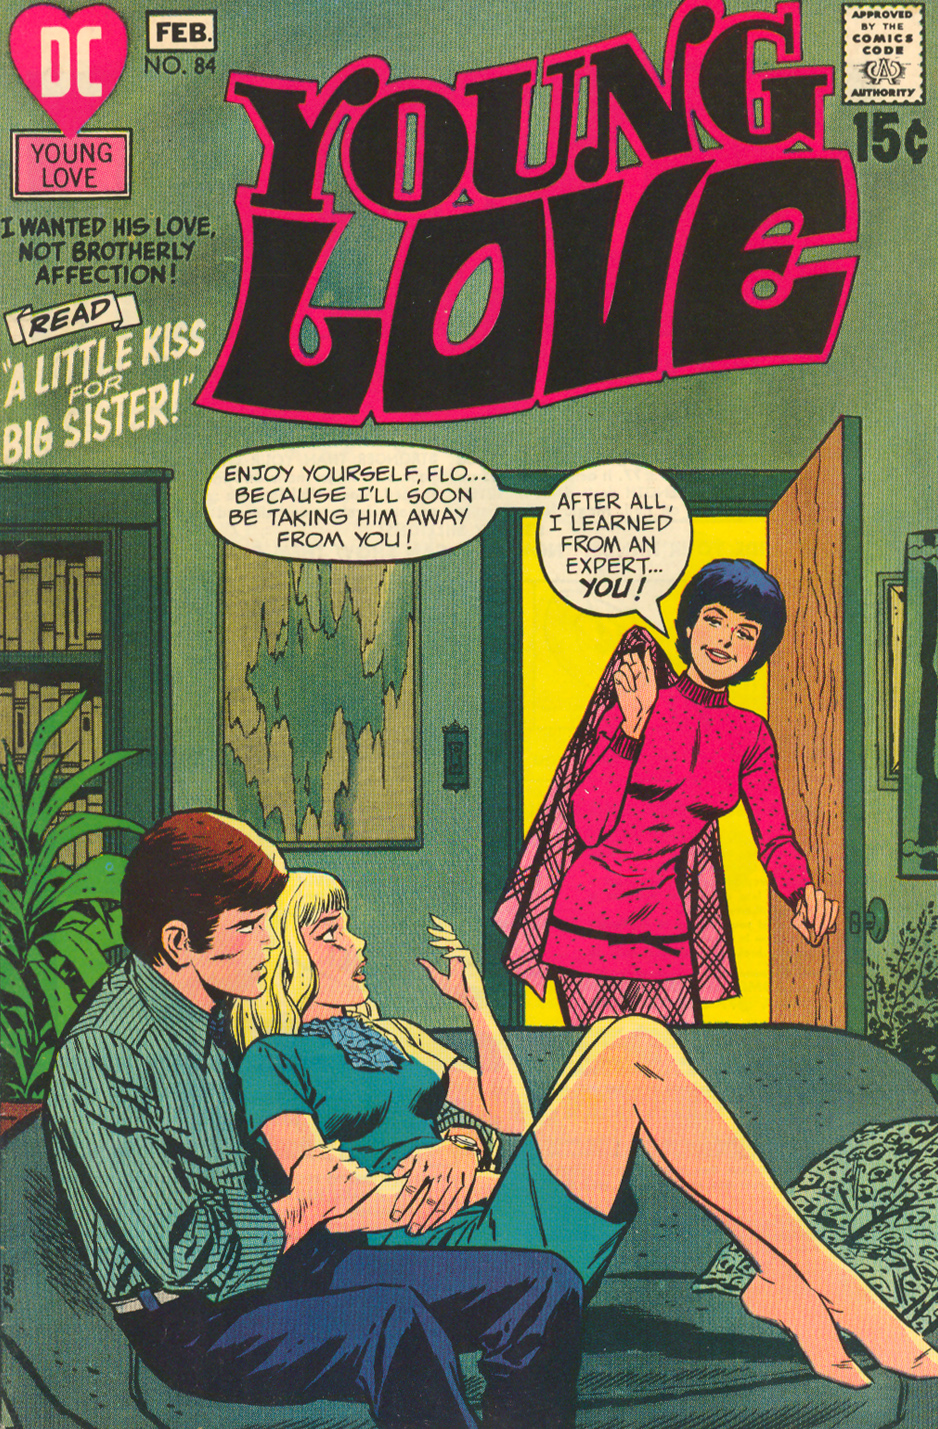 Young Love  #84 (January/February 1971)